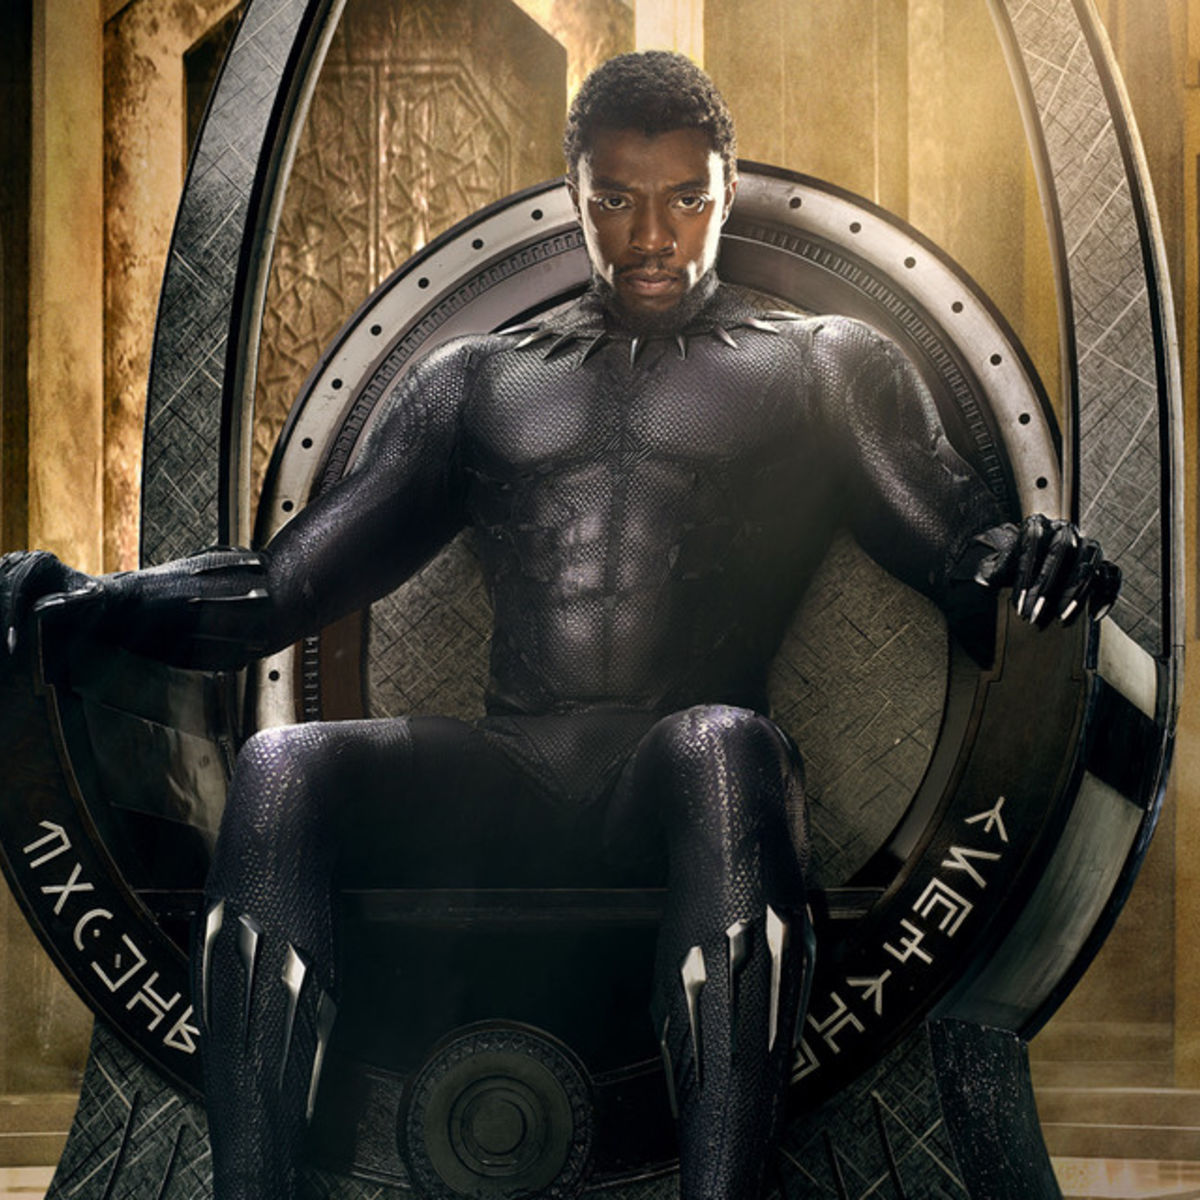 Black Panther soundtrack debuts at no. 1 on Billboard chart   SYFY WIRE